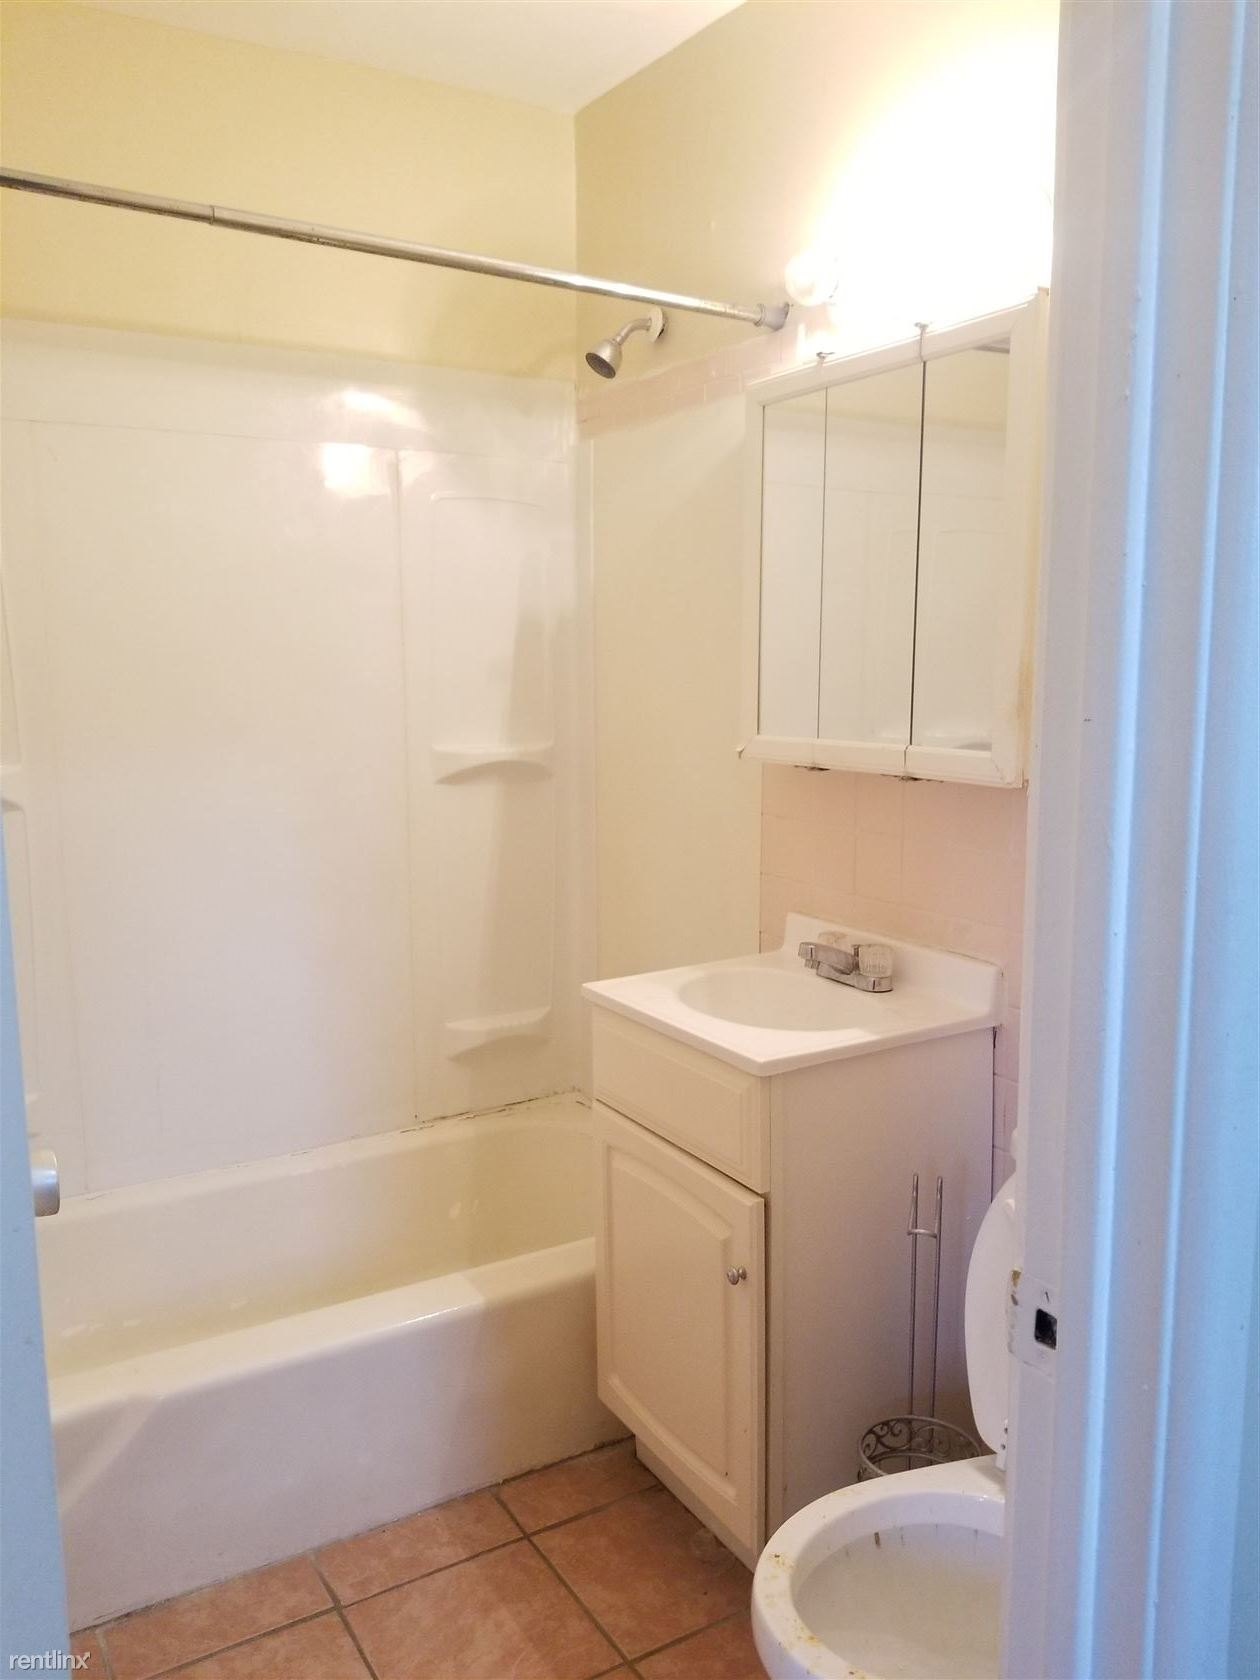 160 Fountain St, New Haven, CT - $800